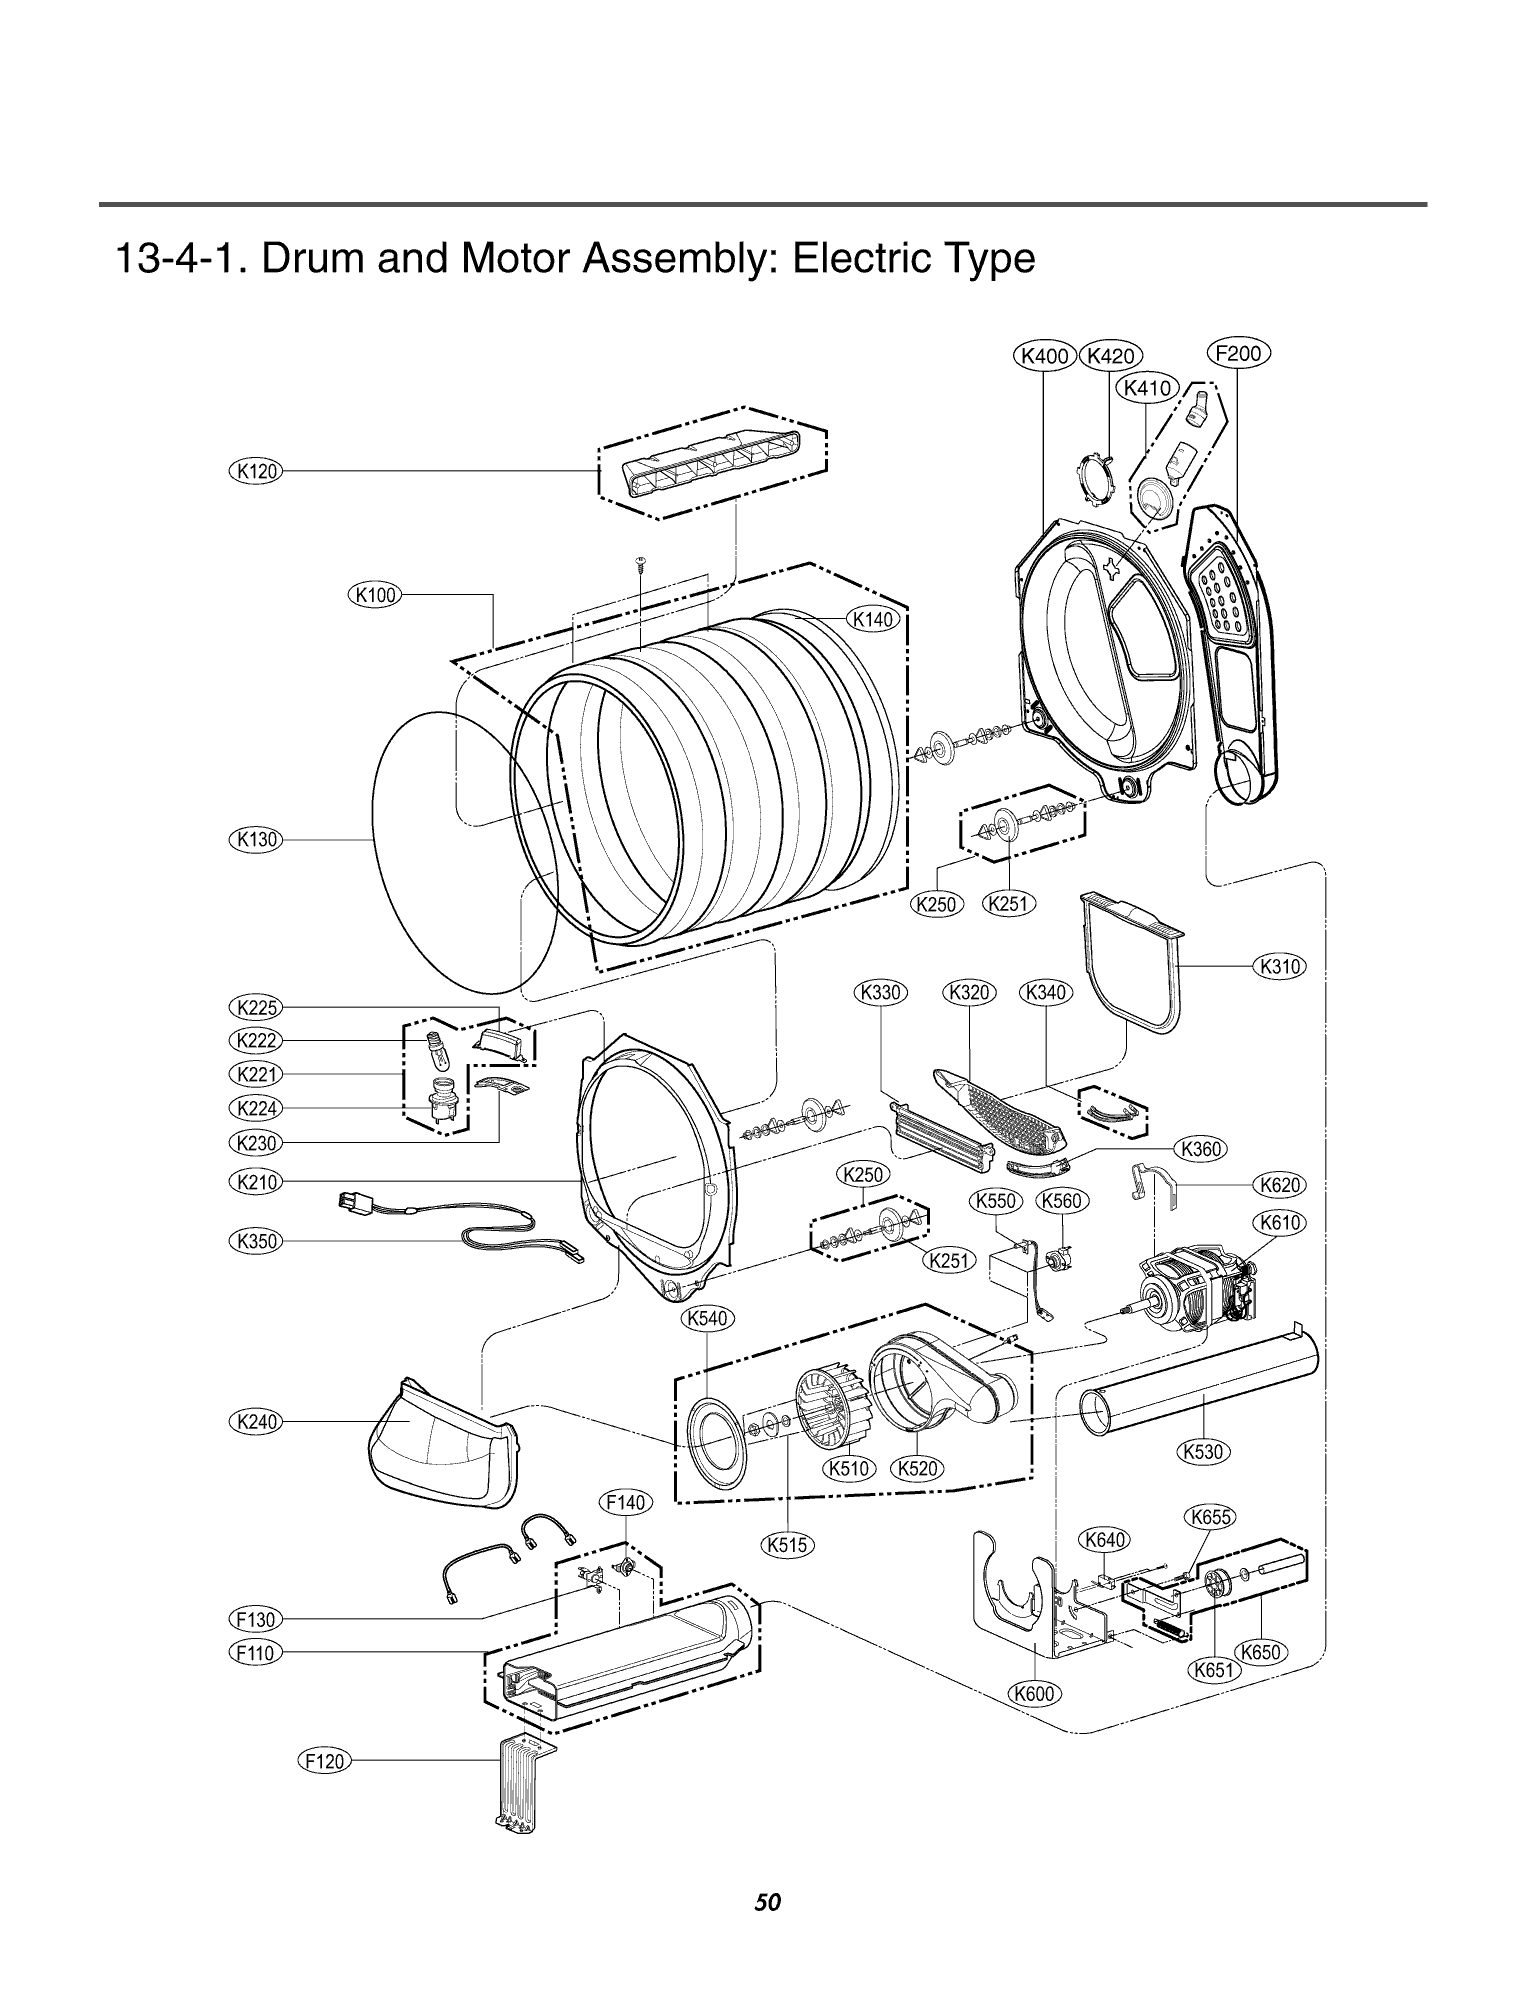 Lg Electronics Dlex W Drum And Motor Assembly Electric